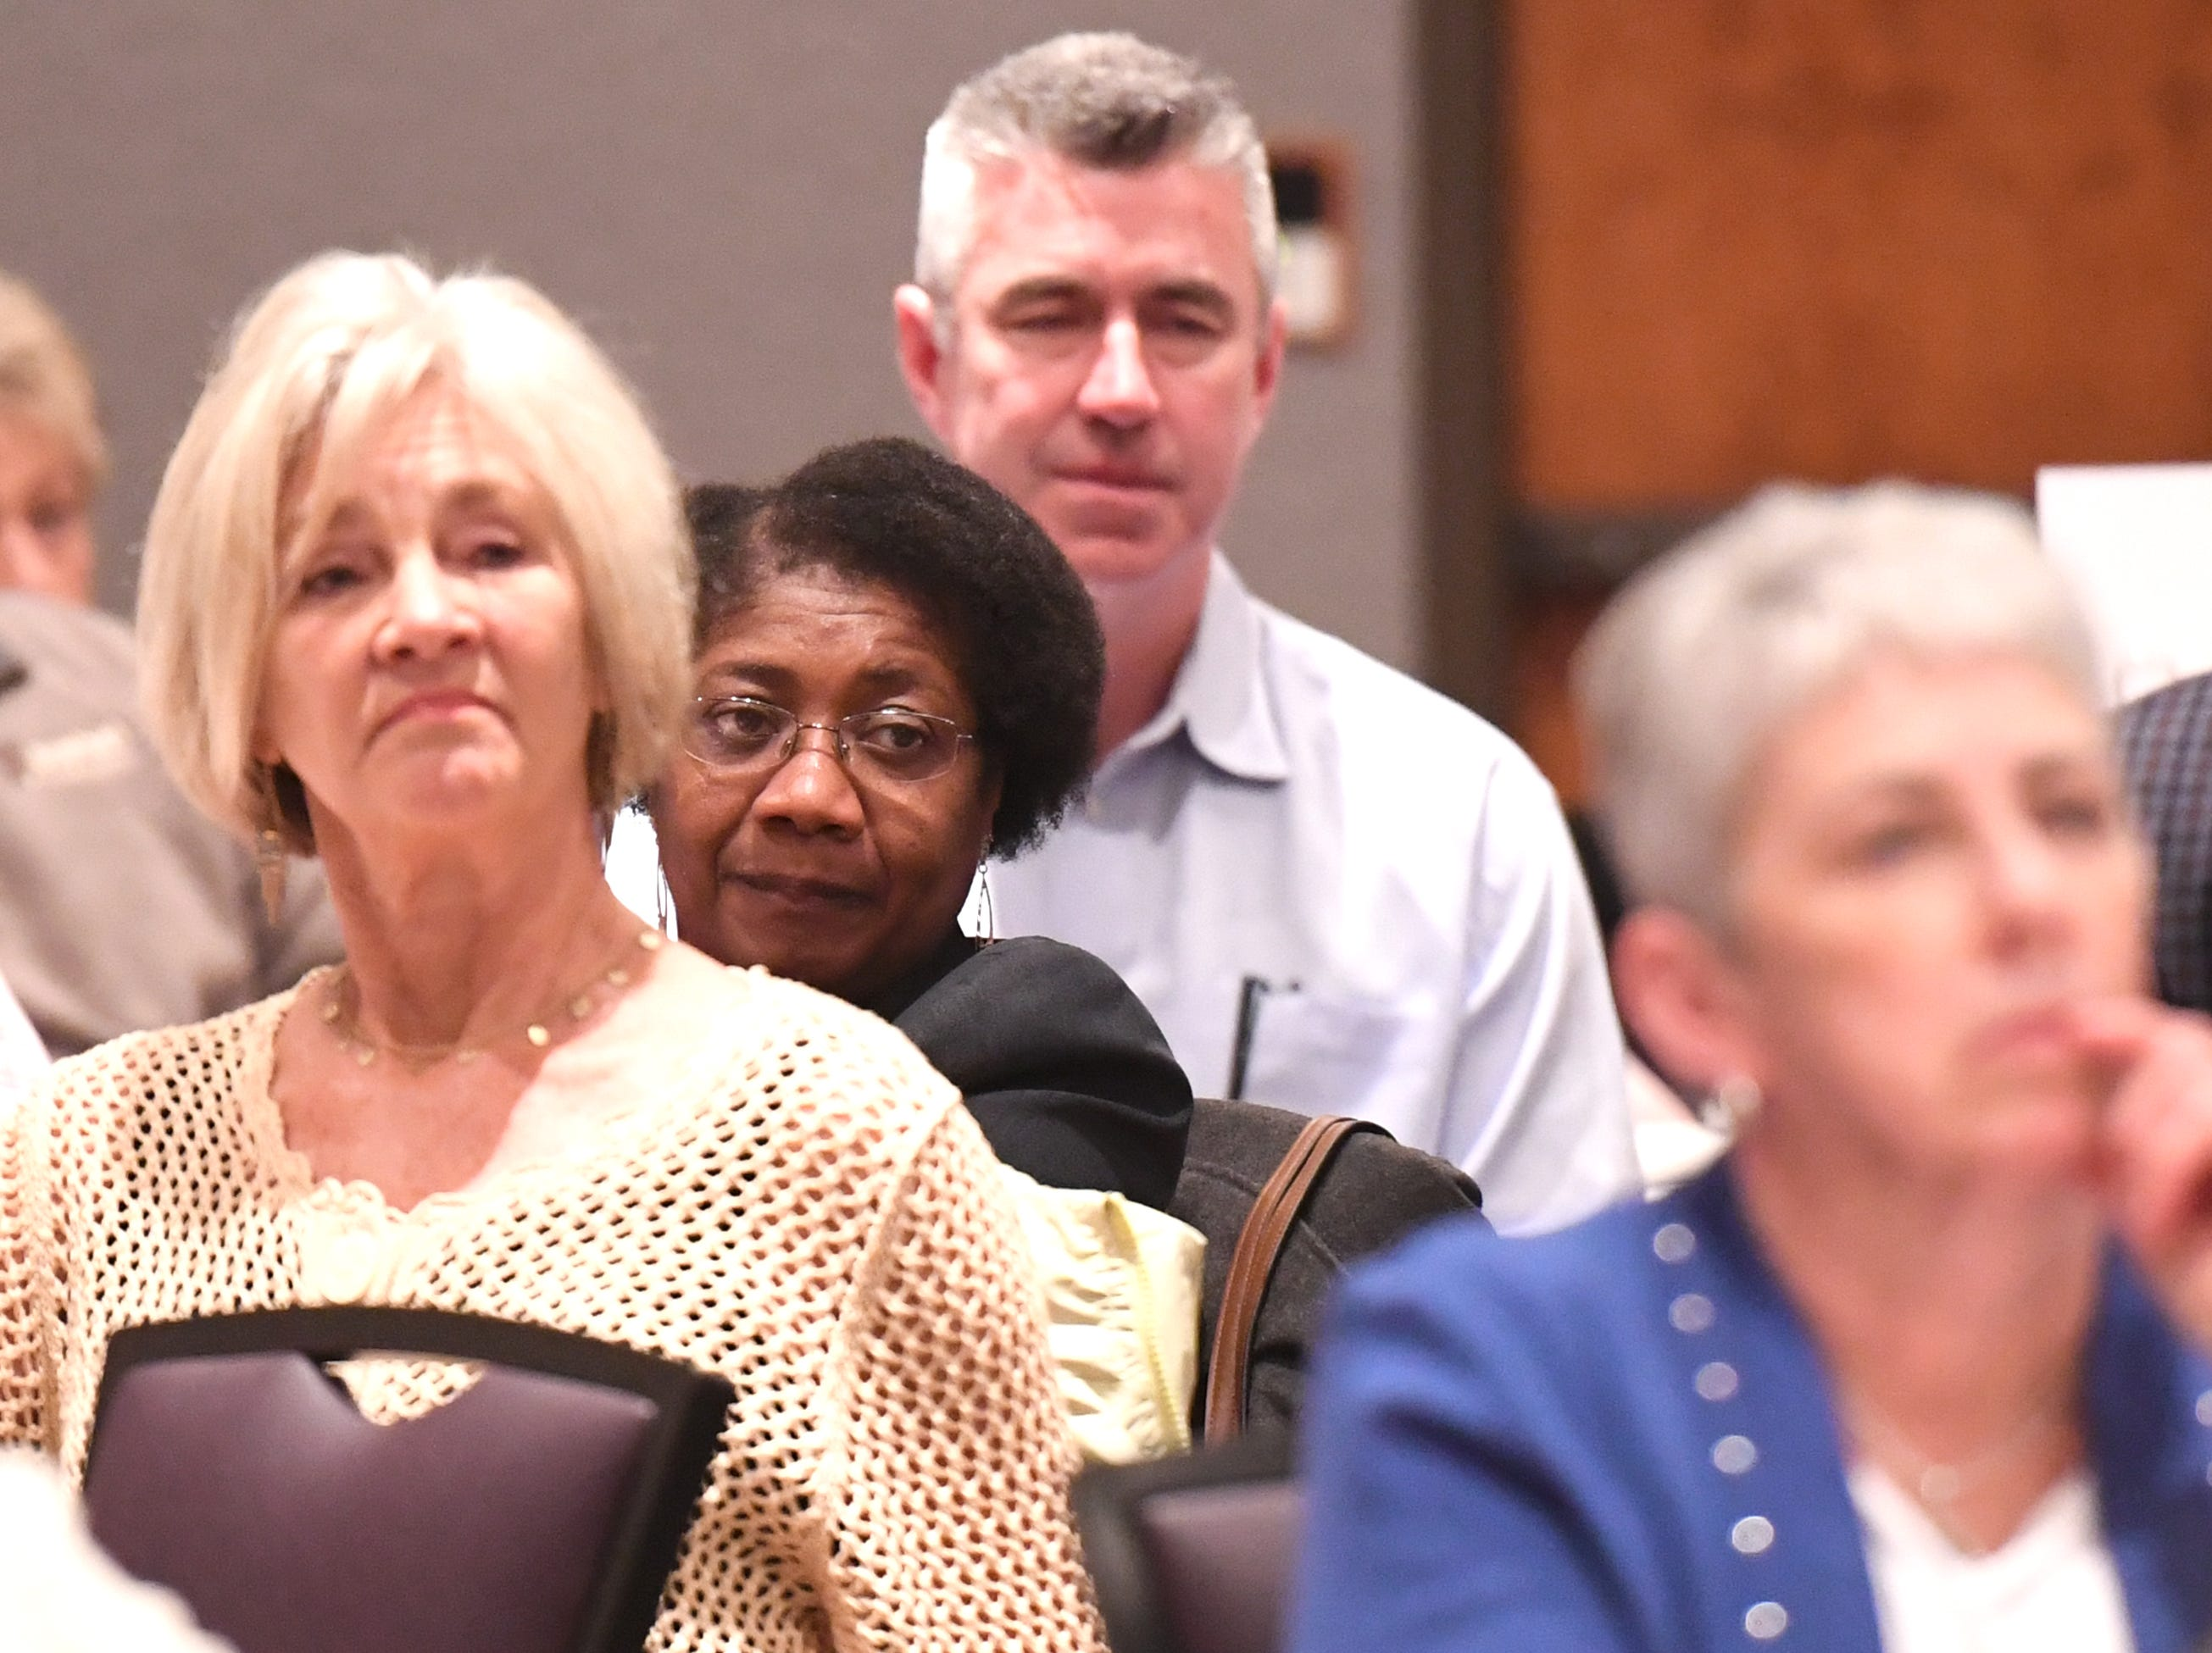 Alesia Smith, a city council member for the City of Clemson, attends the State of Clemson event held at the Madren Center Tuesday, Feb. 19, 2019.